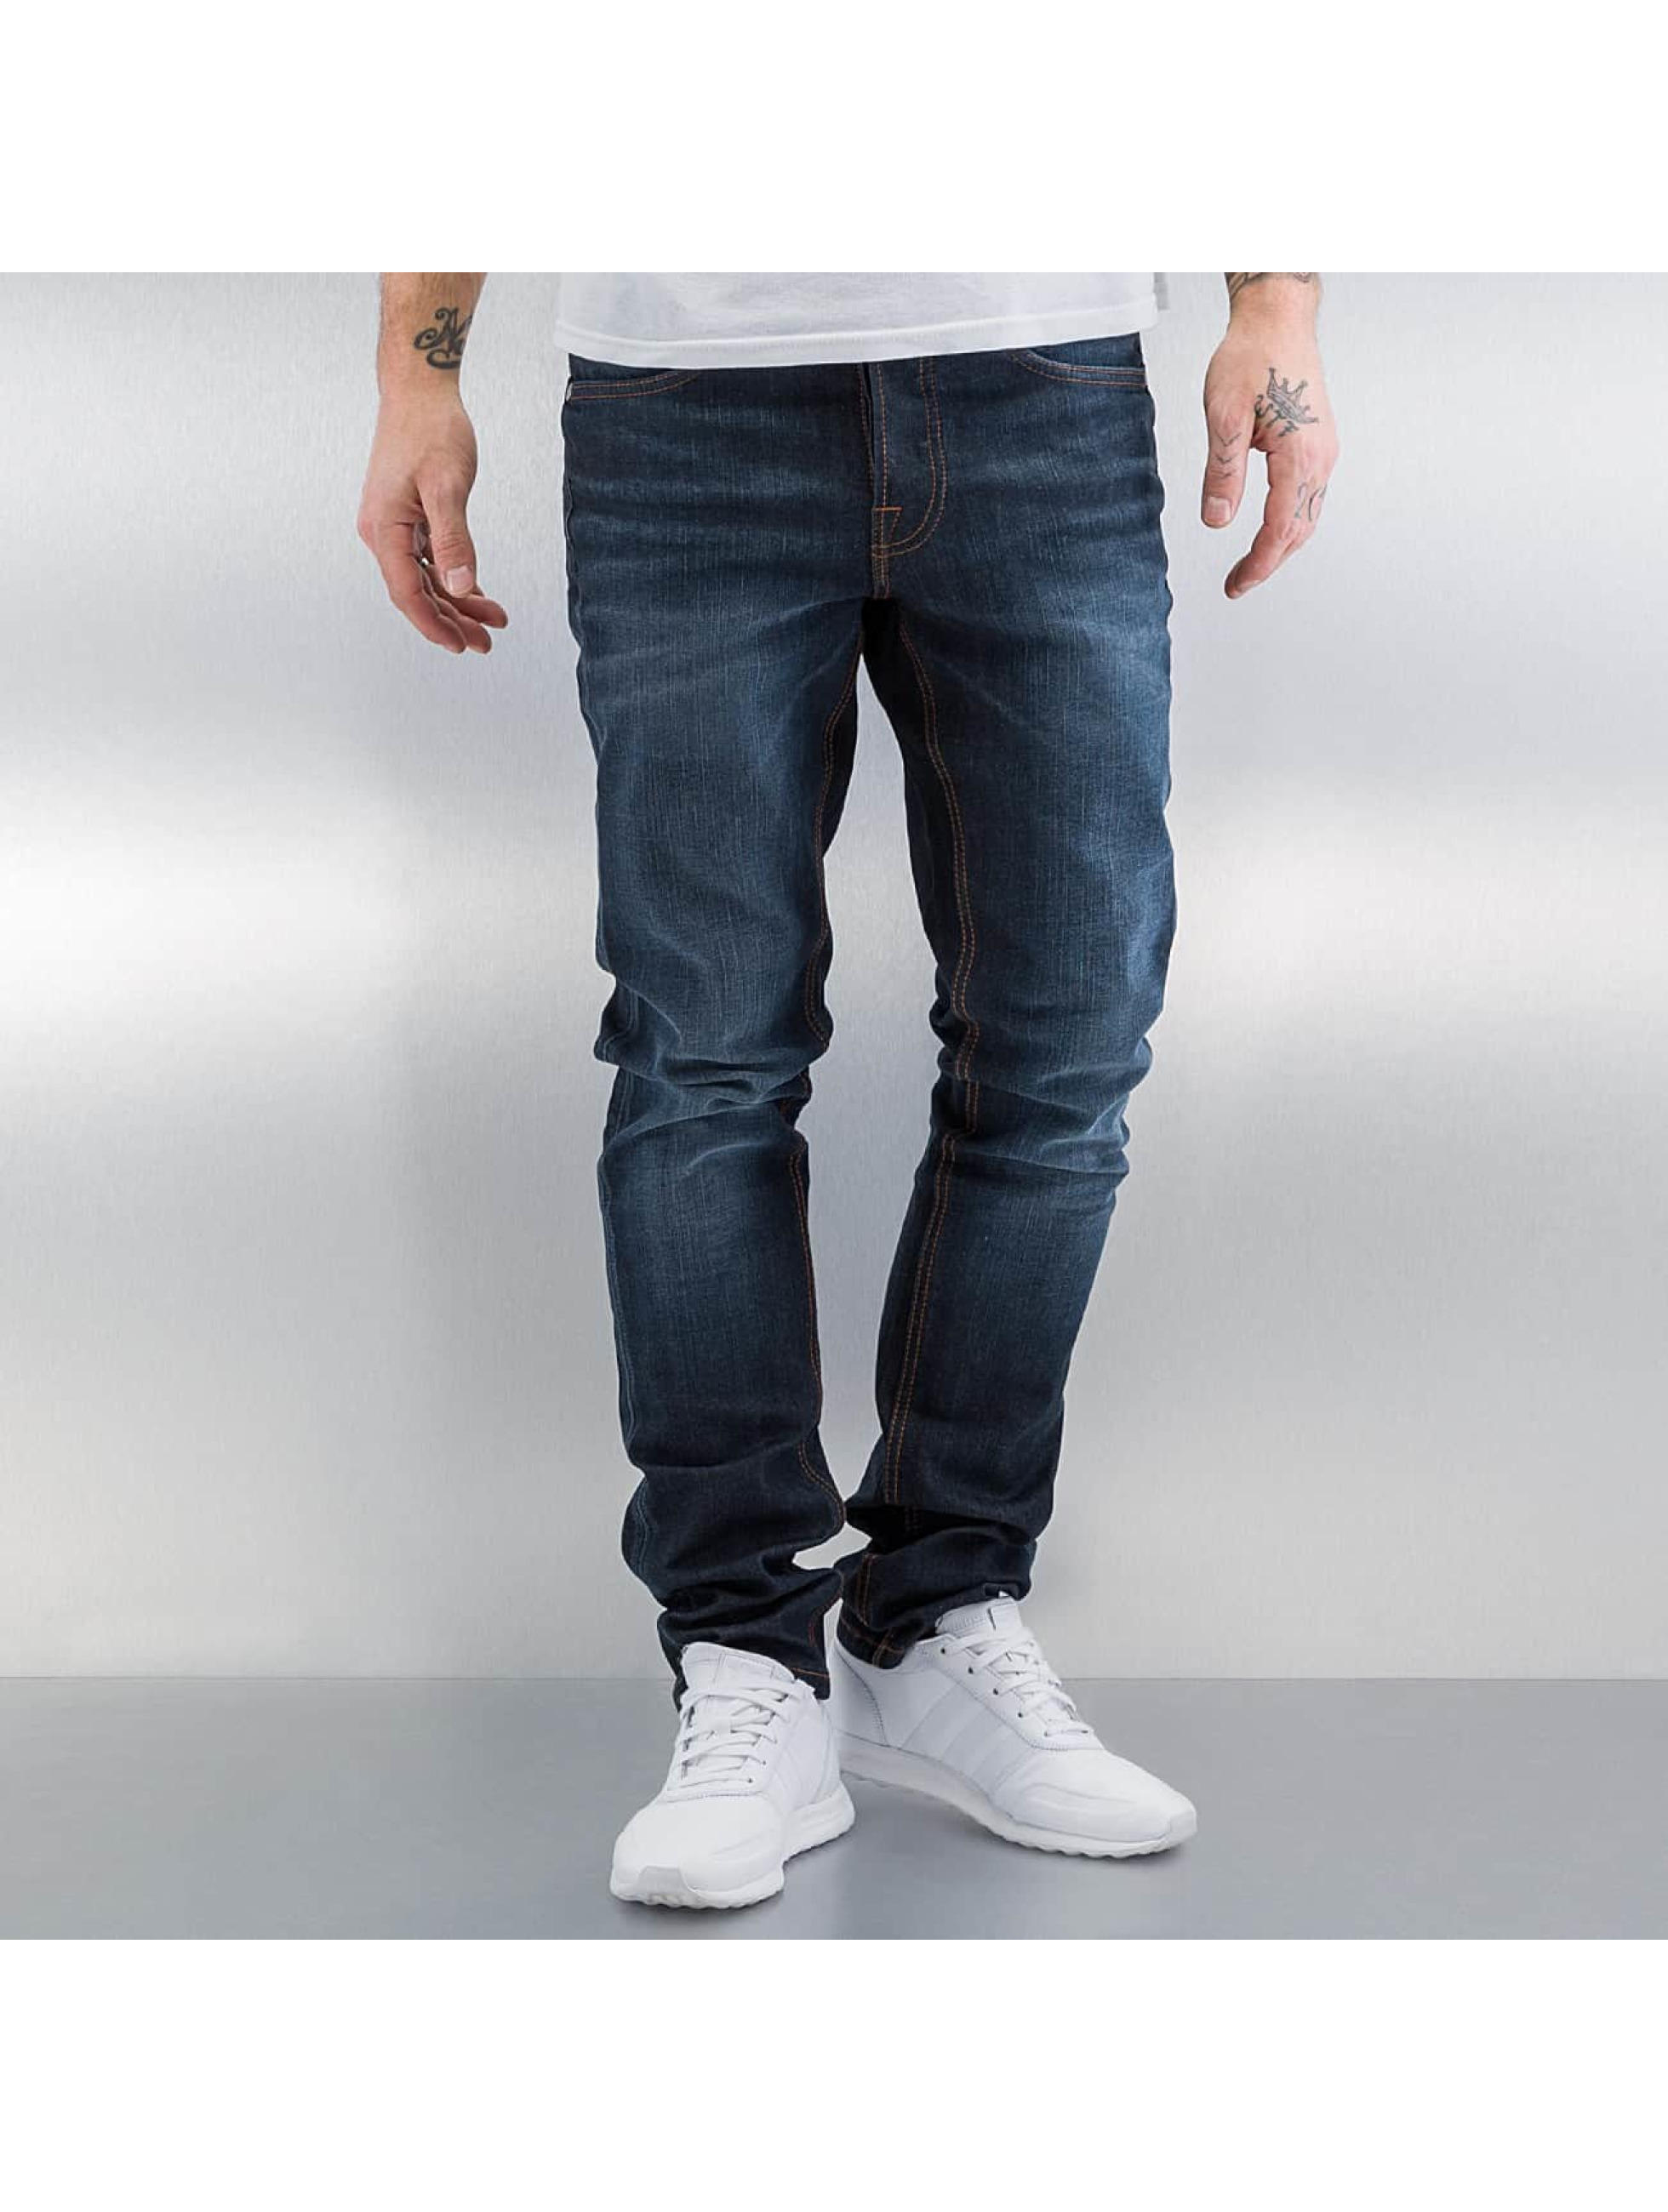 Amsterdenim Straight Fit Jeans Mar blau